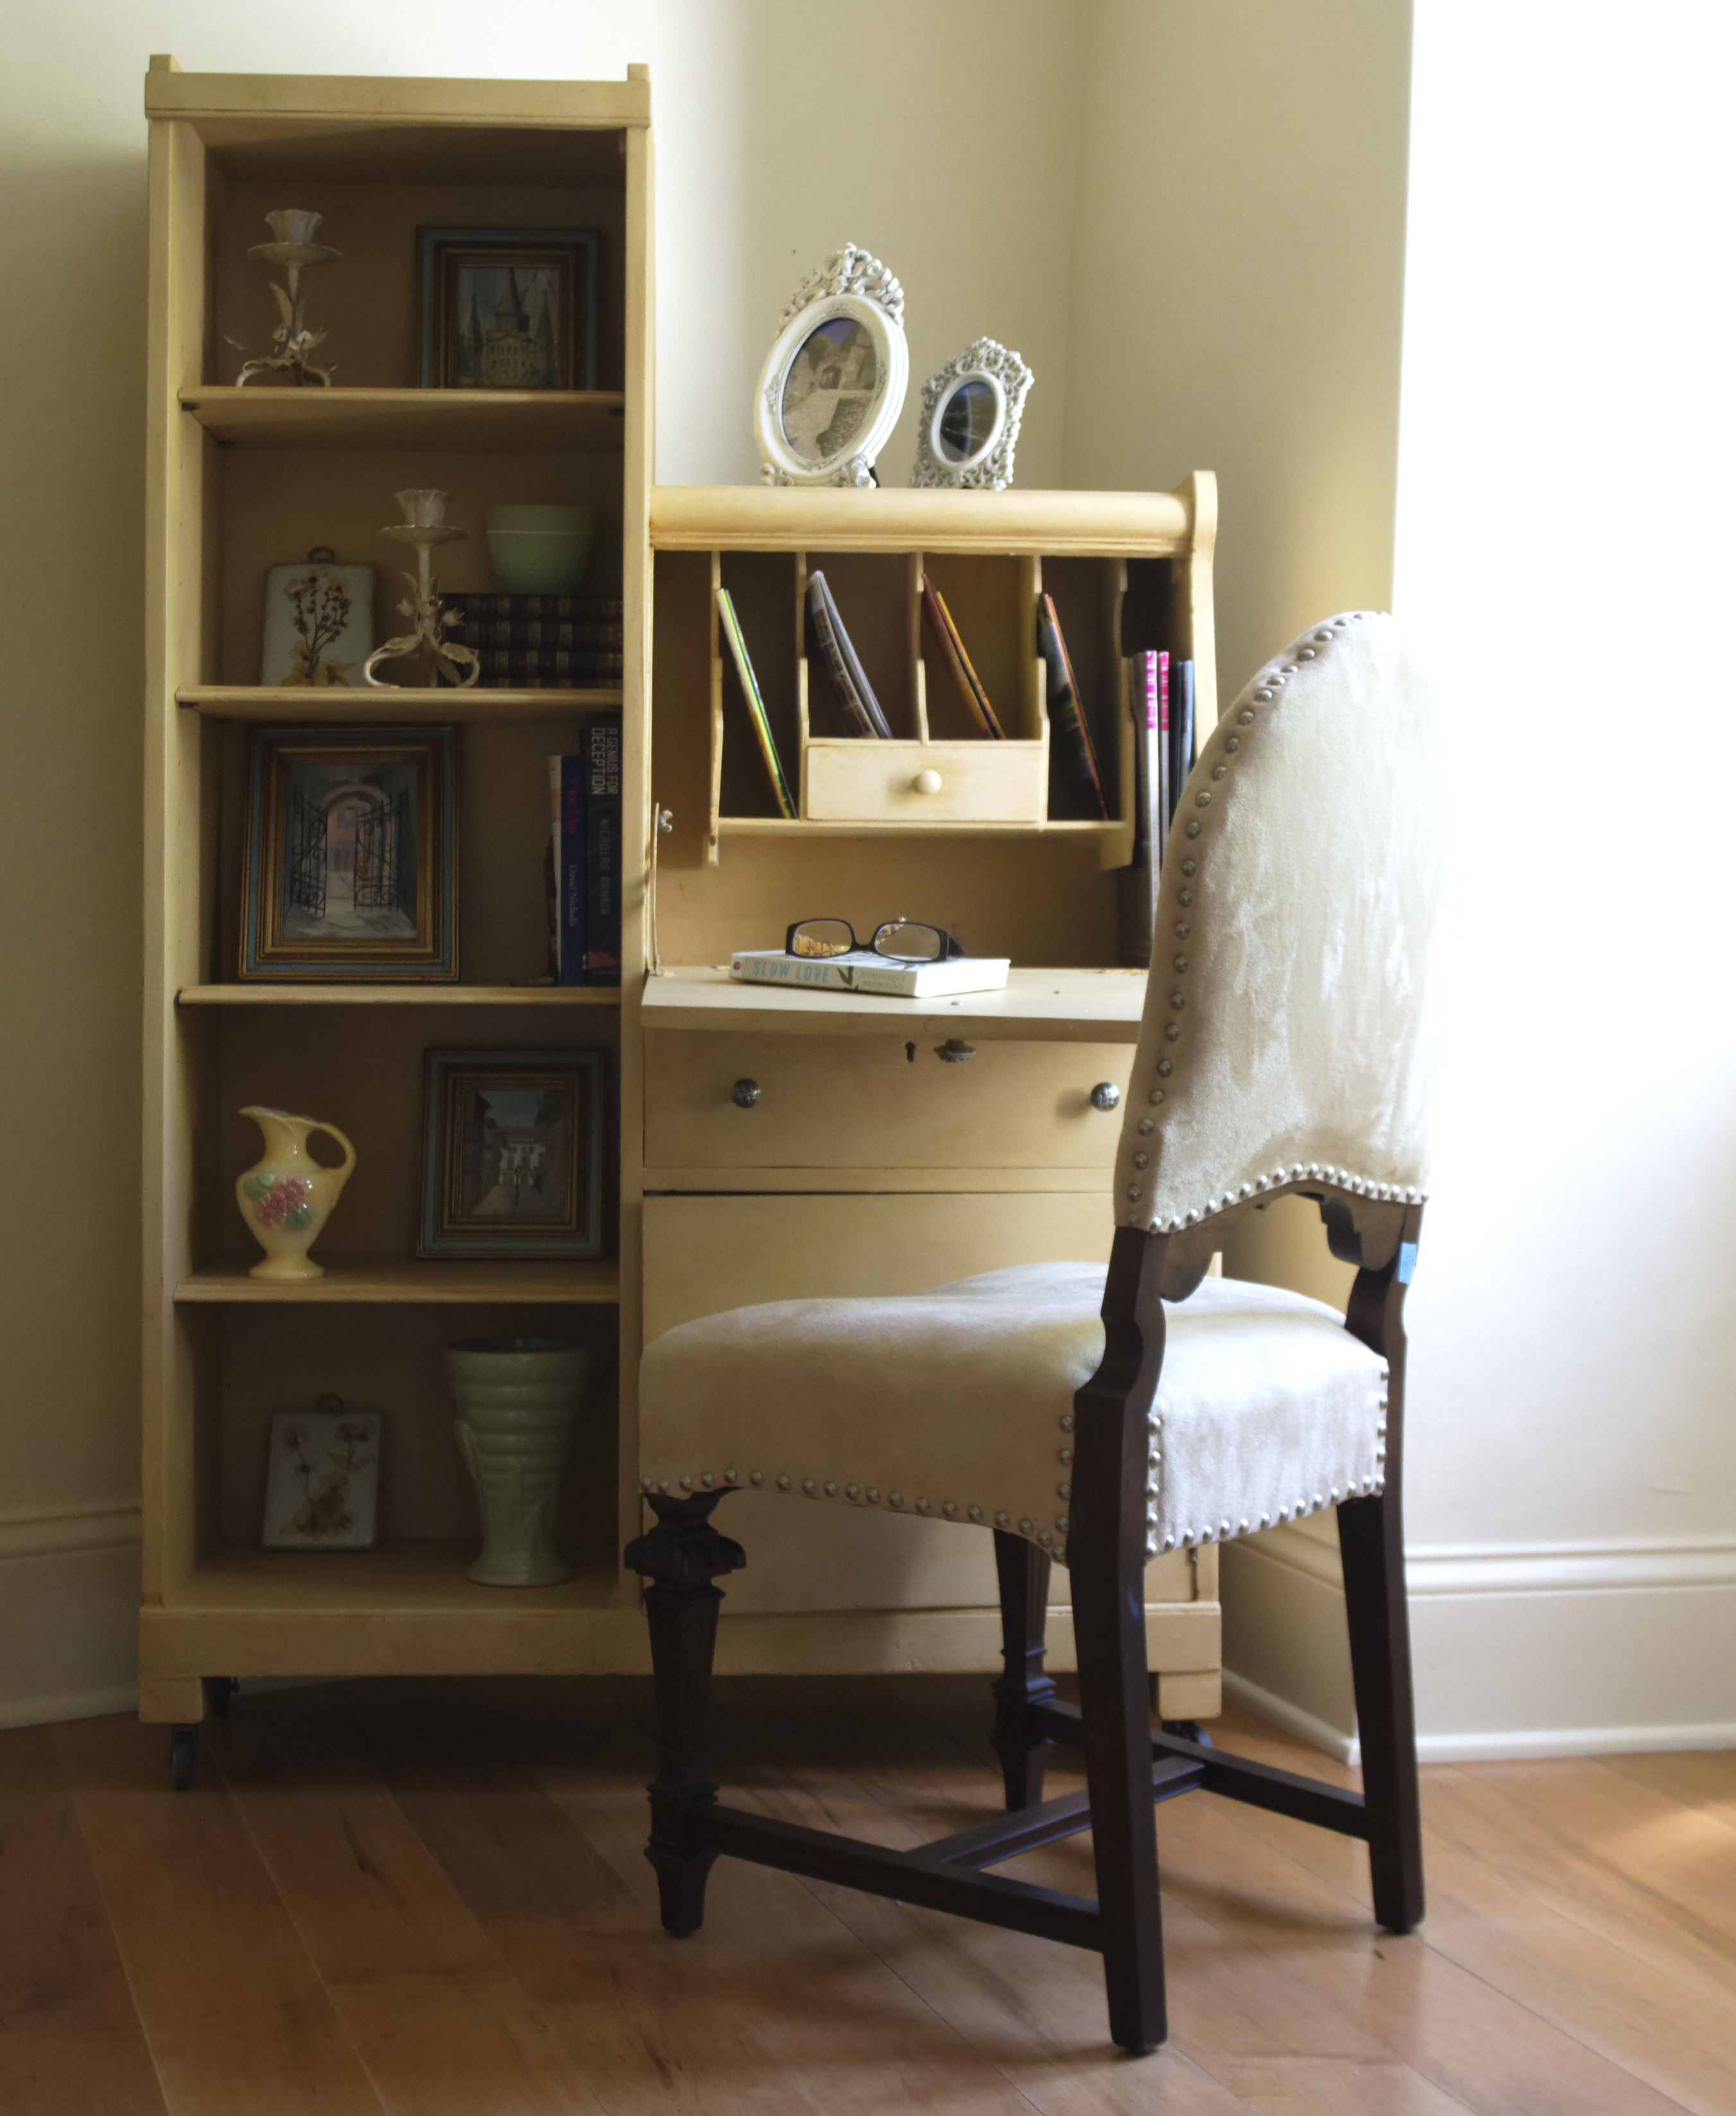 Plans for building a small bookcase Plans DIY How to Make  quizzical48dhy